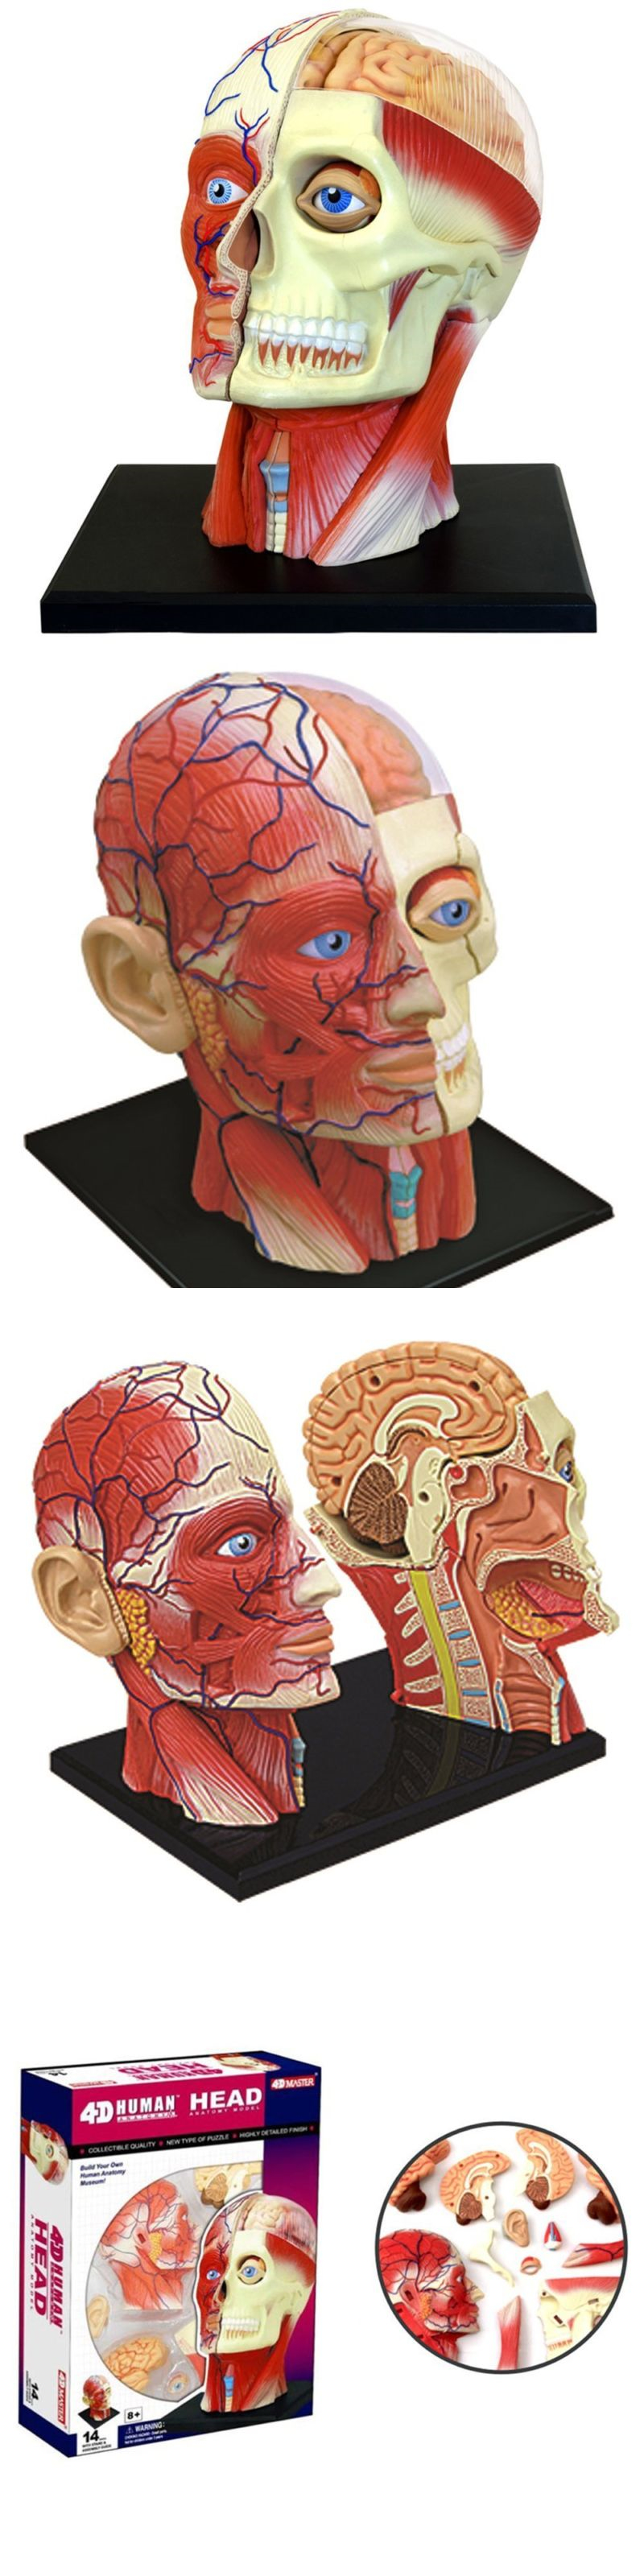 Other Science and Nature Toys 11737: Human Head Skull Brain Anatomy ...